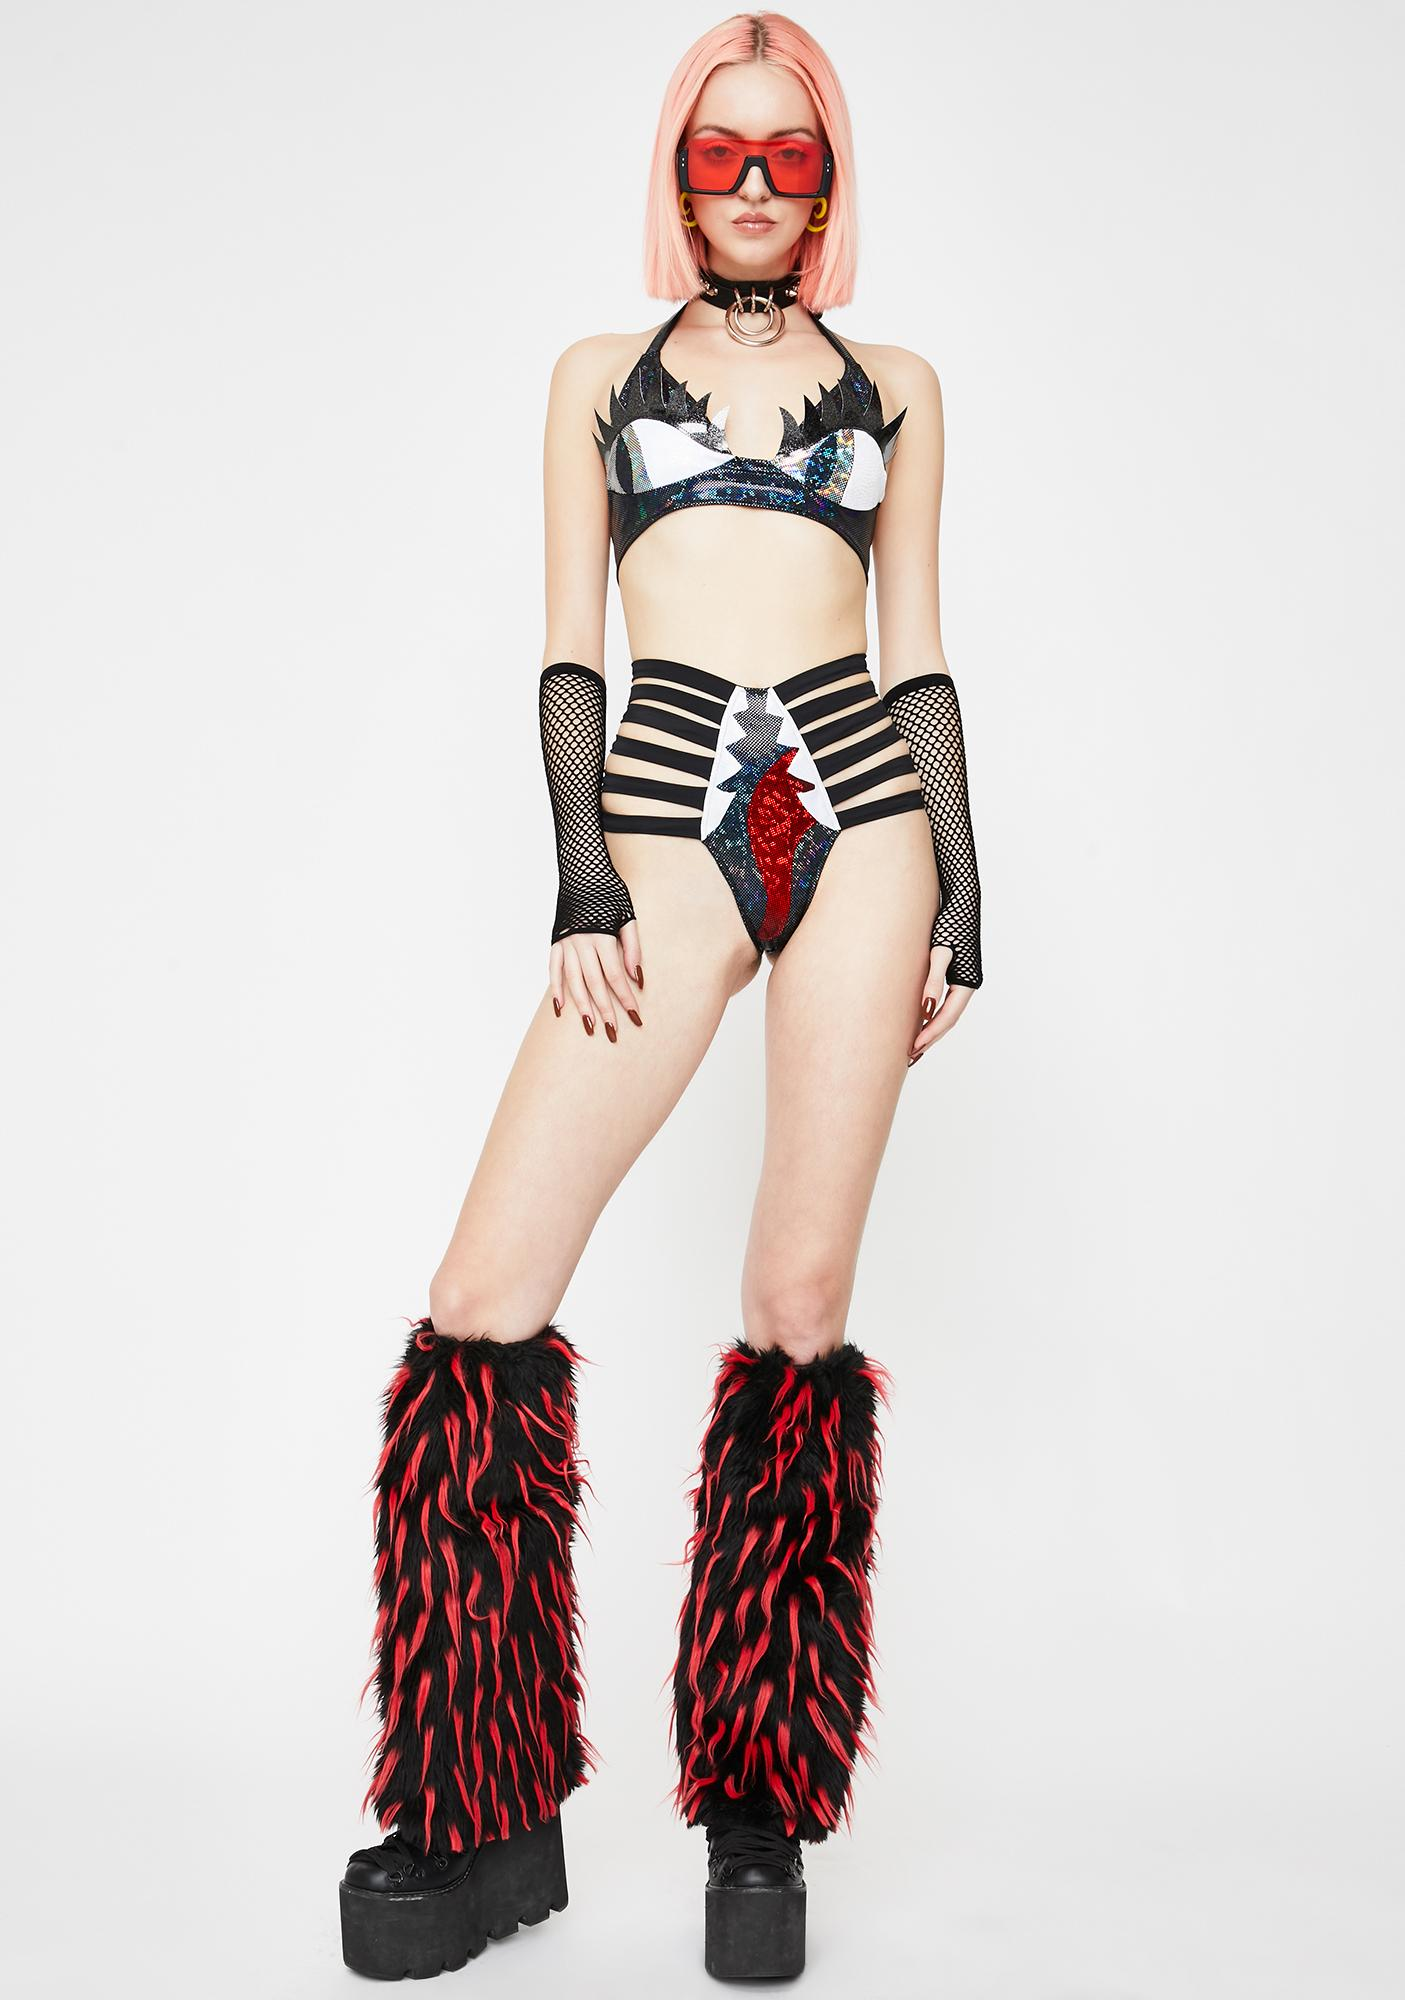 J Valentine Black & Red Faux Fur Leg Warmers